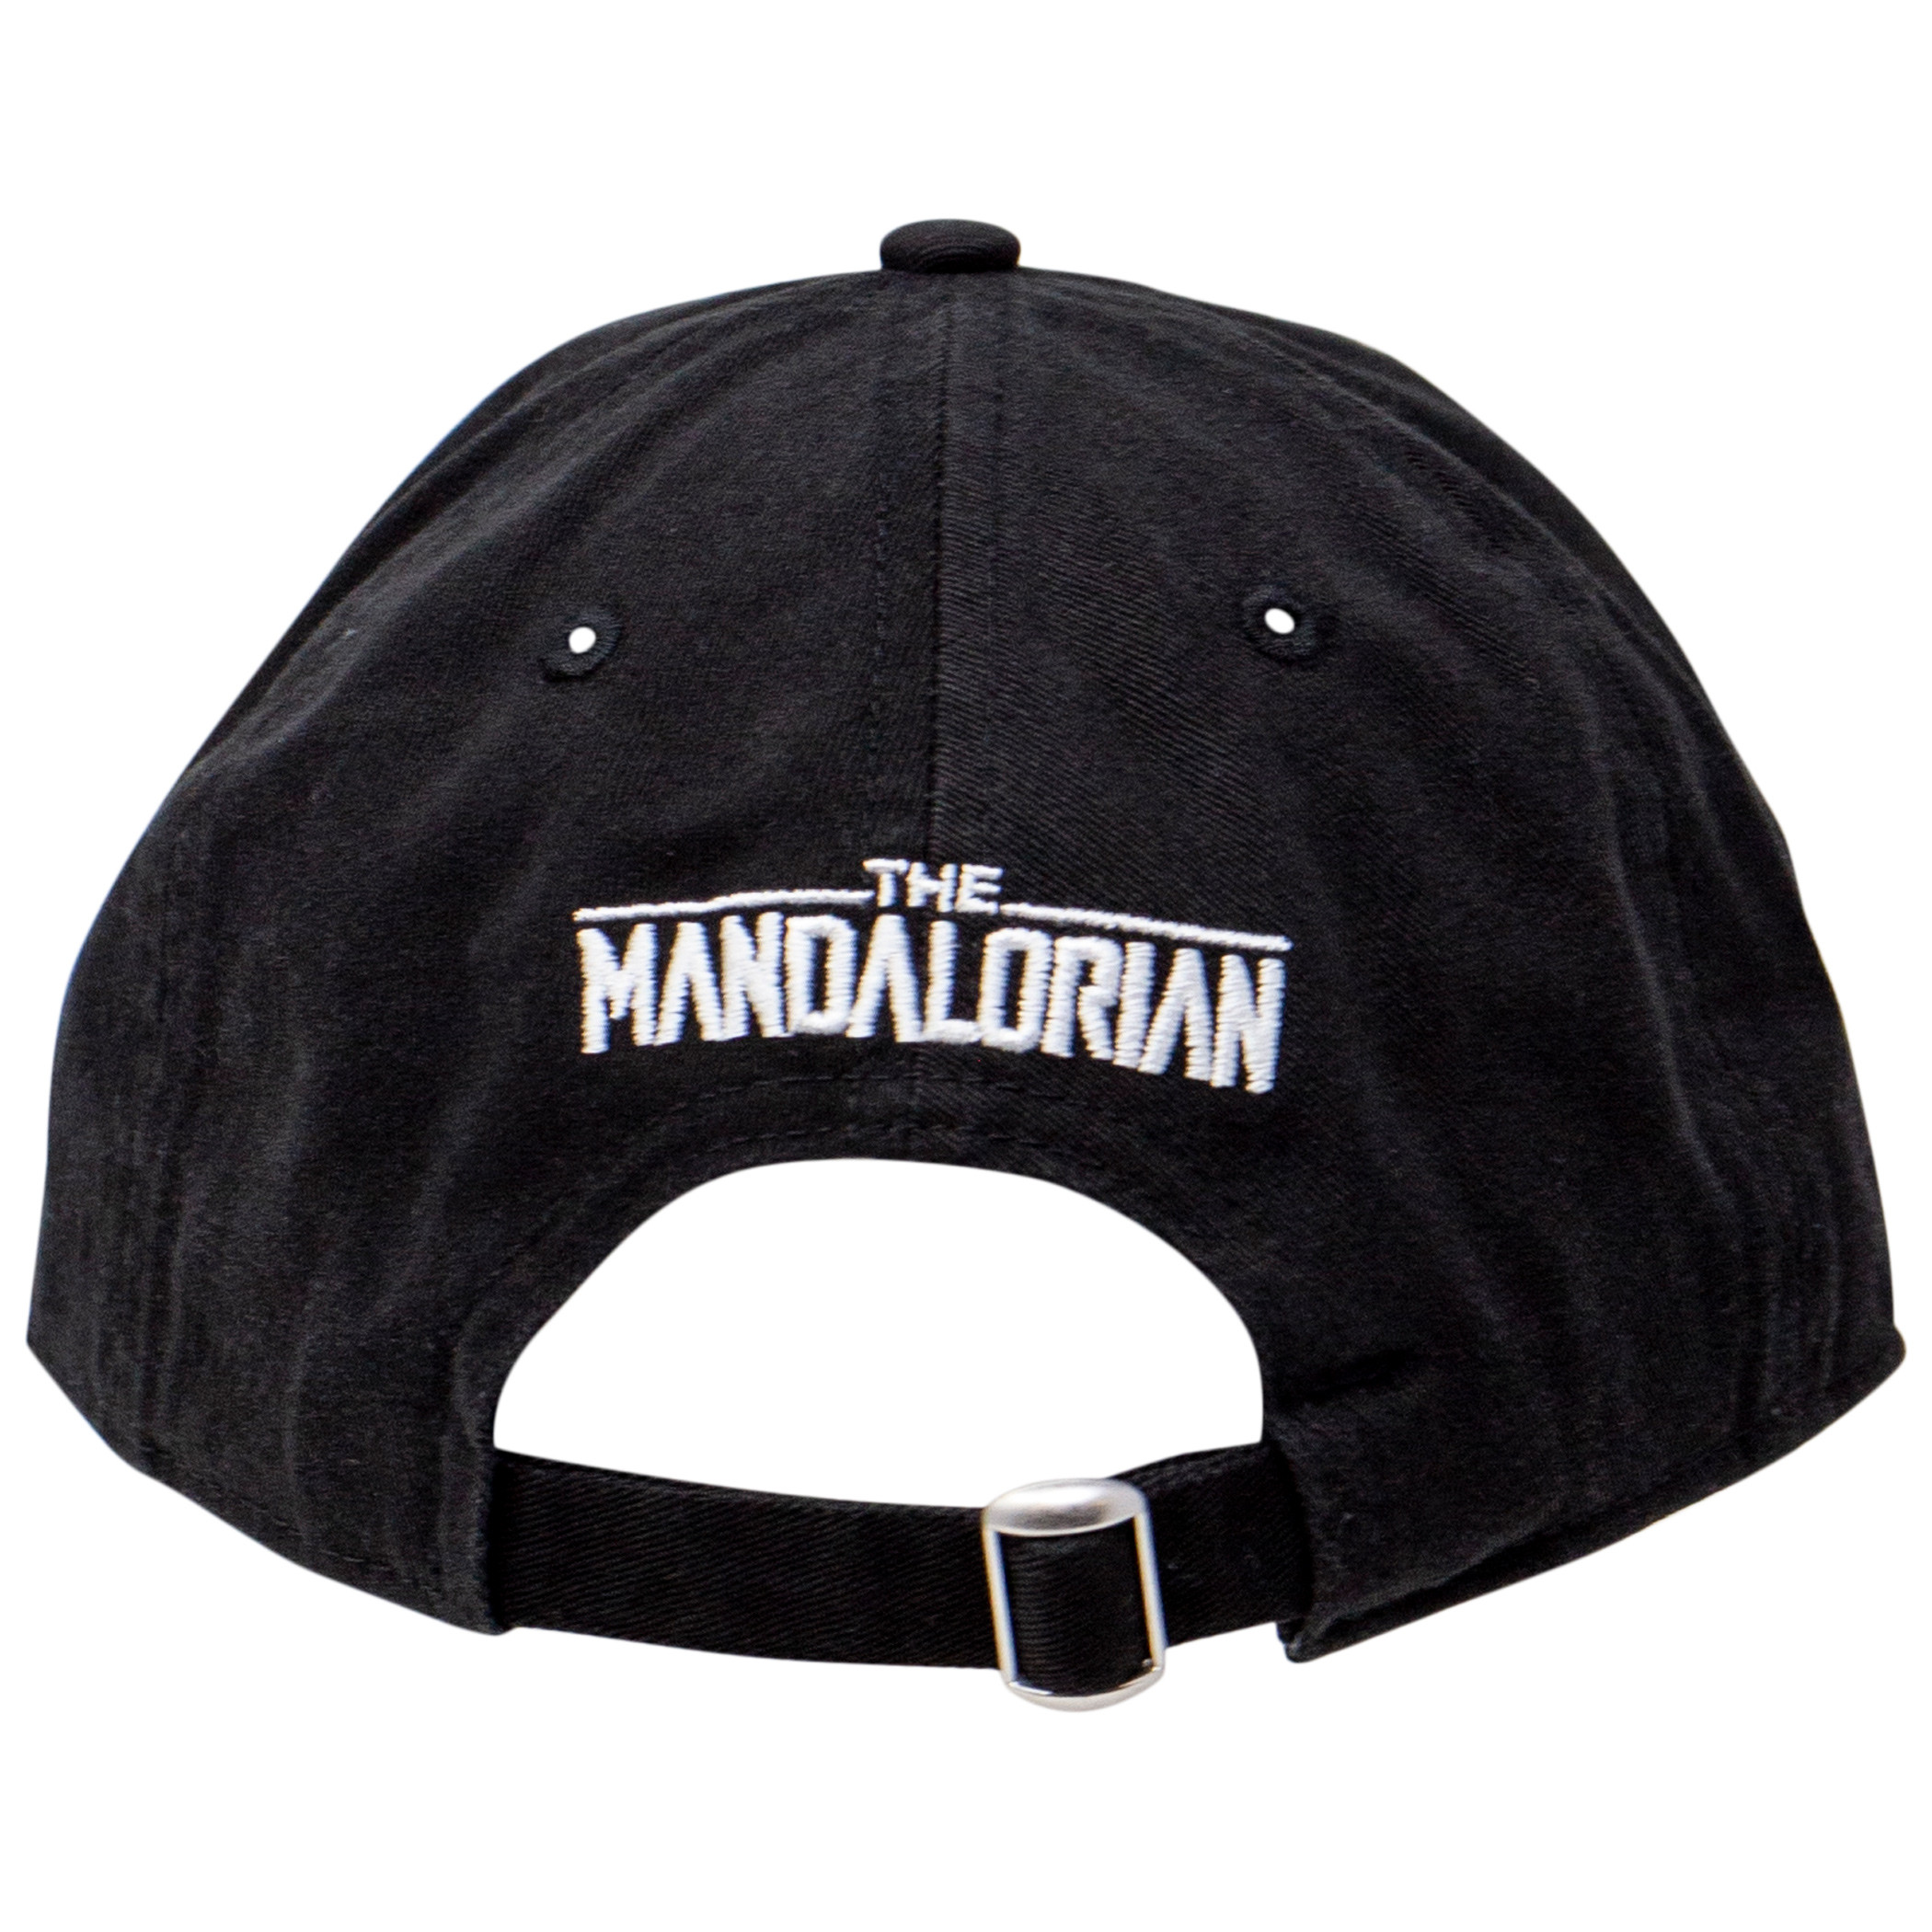 Star Wars The Mandalorian This Is The Way 9Twenty Adjustable New Era Hat